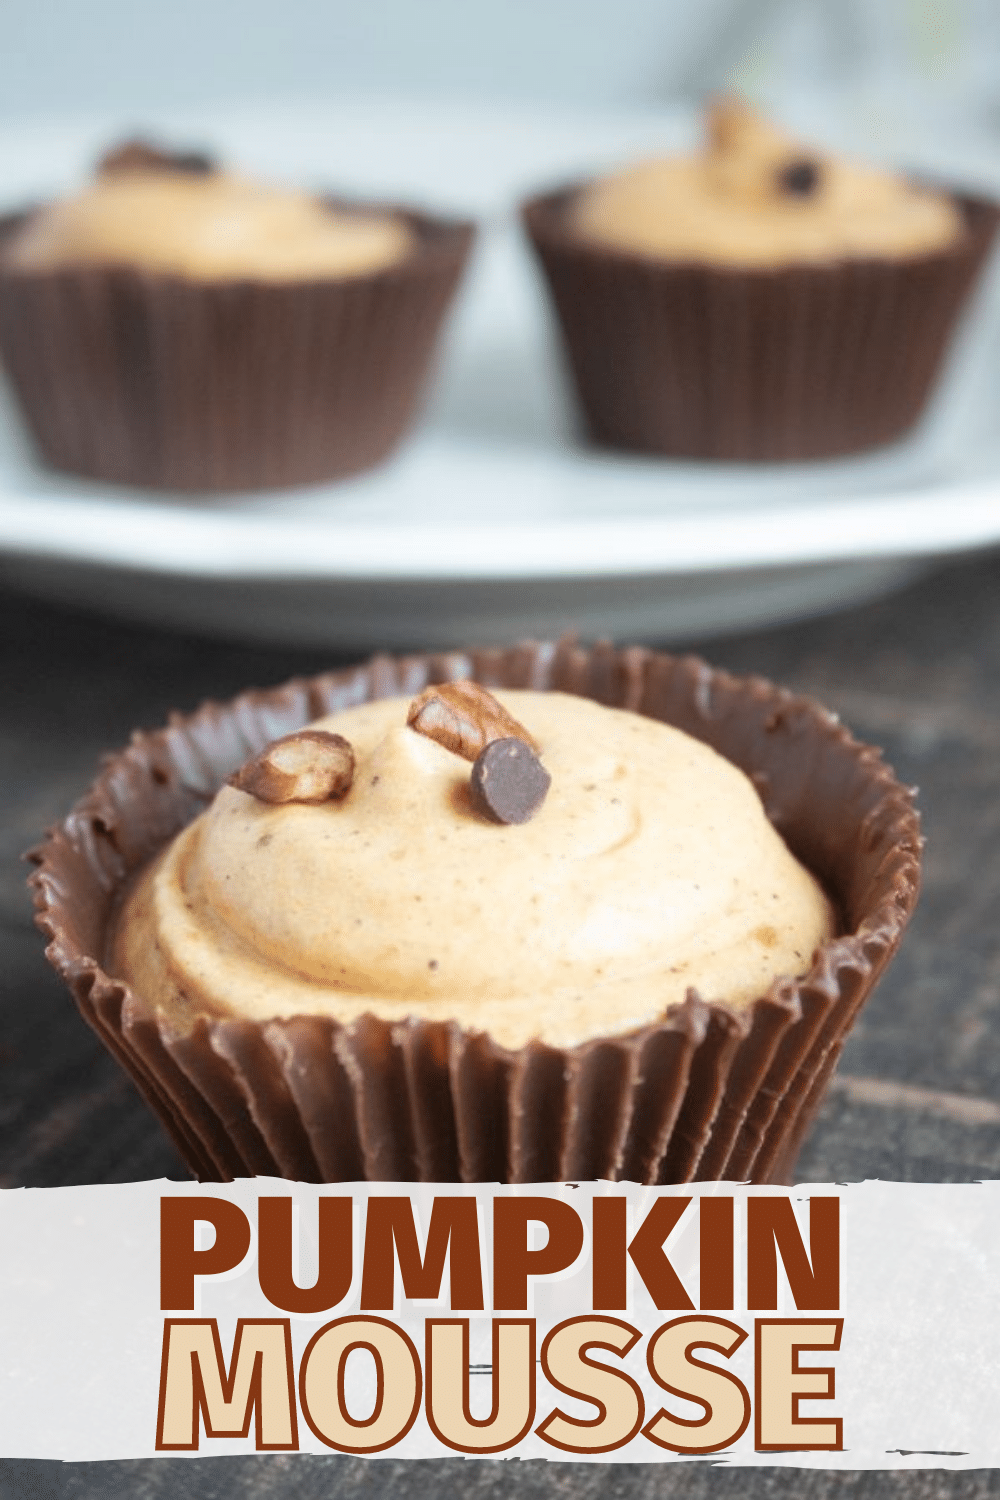 Easy pumpkin mousse is an elegant dessert recipe that is actually very simple to make. This is a great Thanksgiving dessert recipe for a crowd. #mousse #pumpkin #dessert via @wondermomwannab